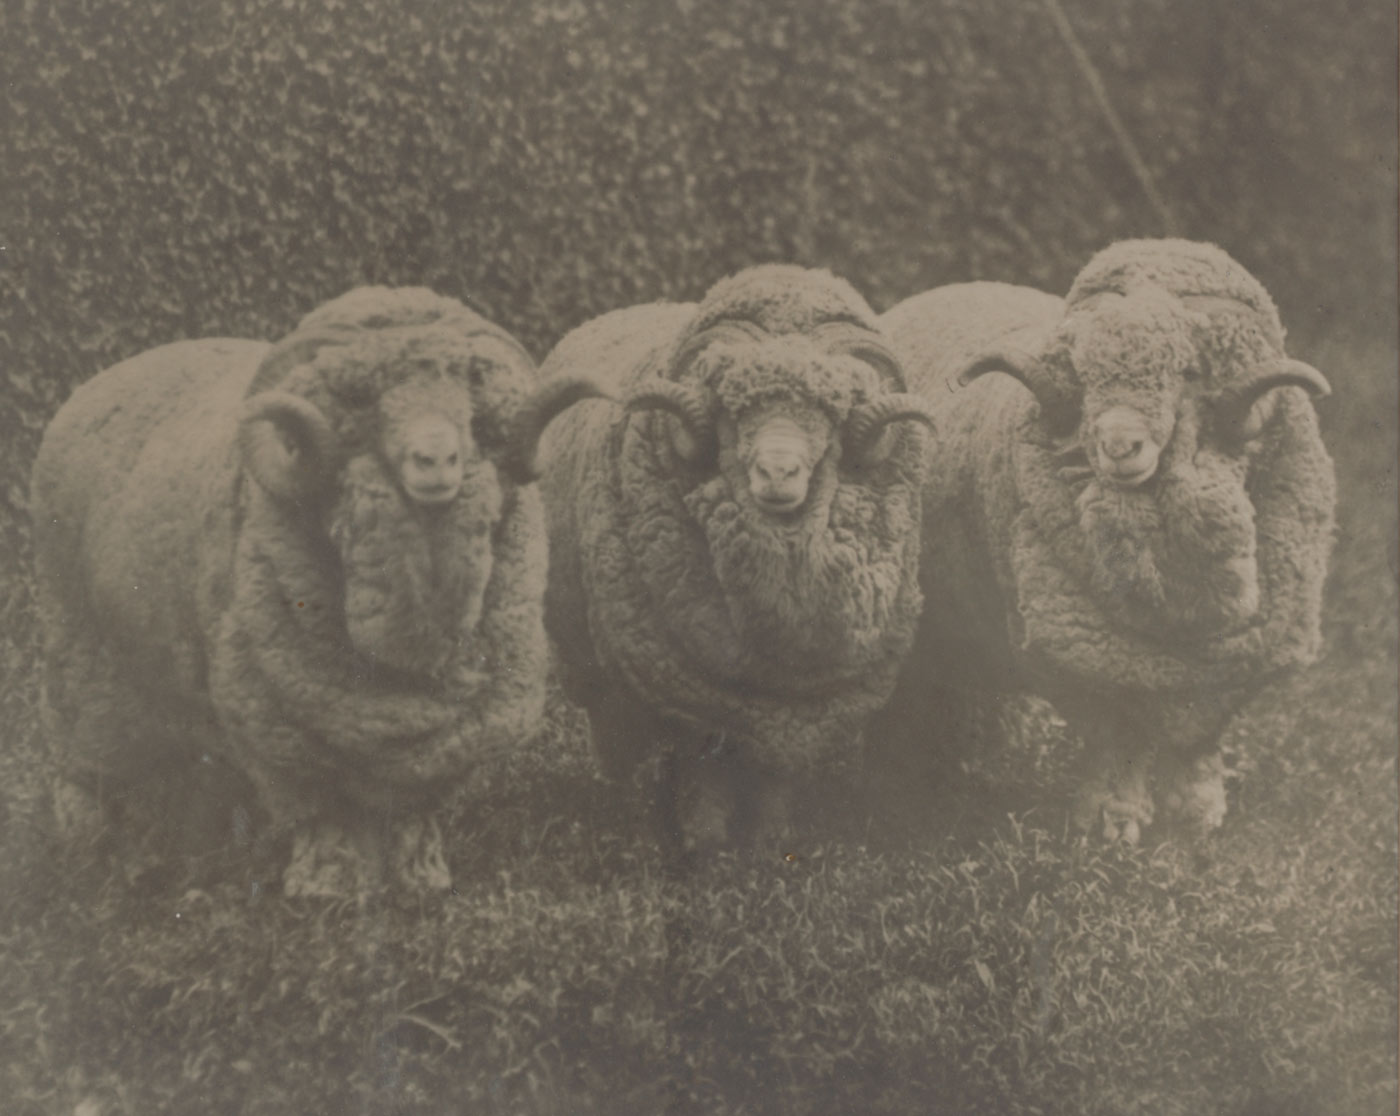 Black and white framed photograph of three very wooly rams.